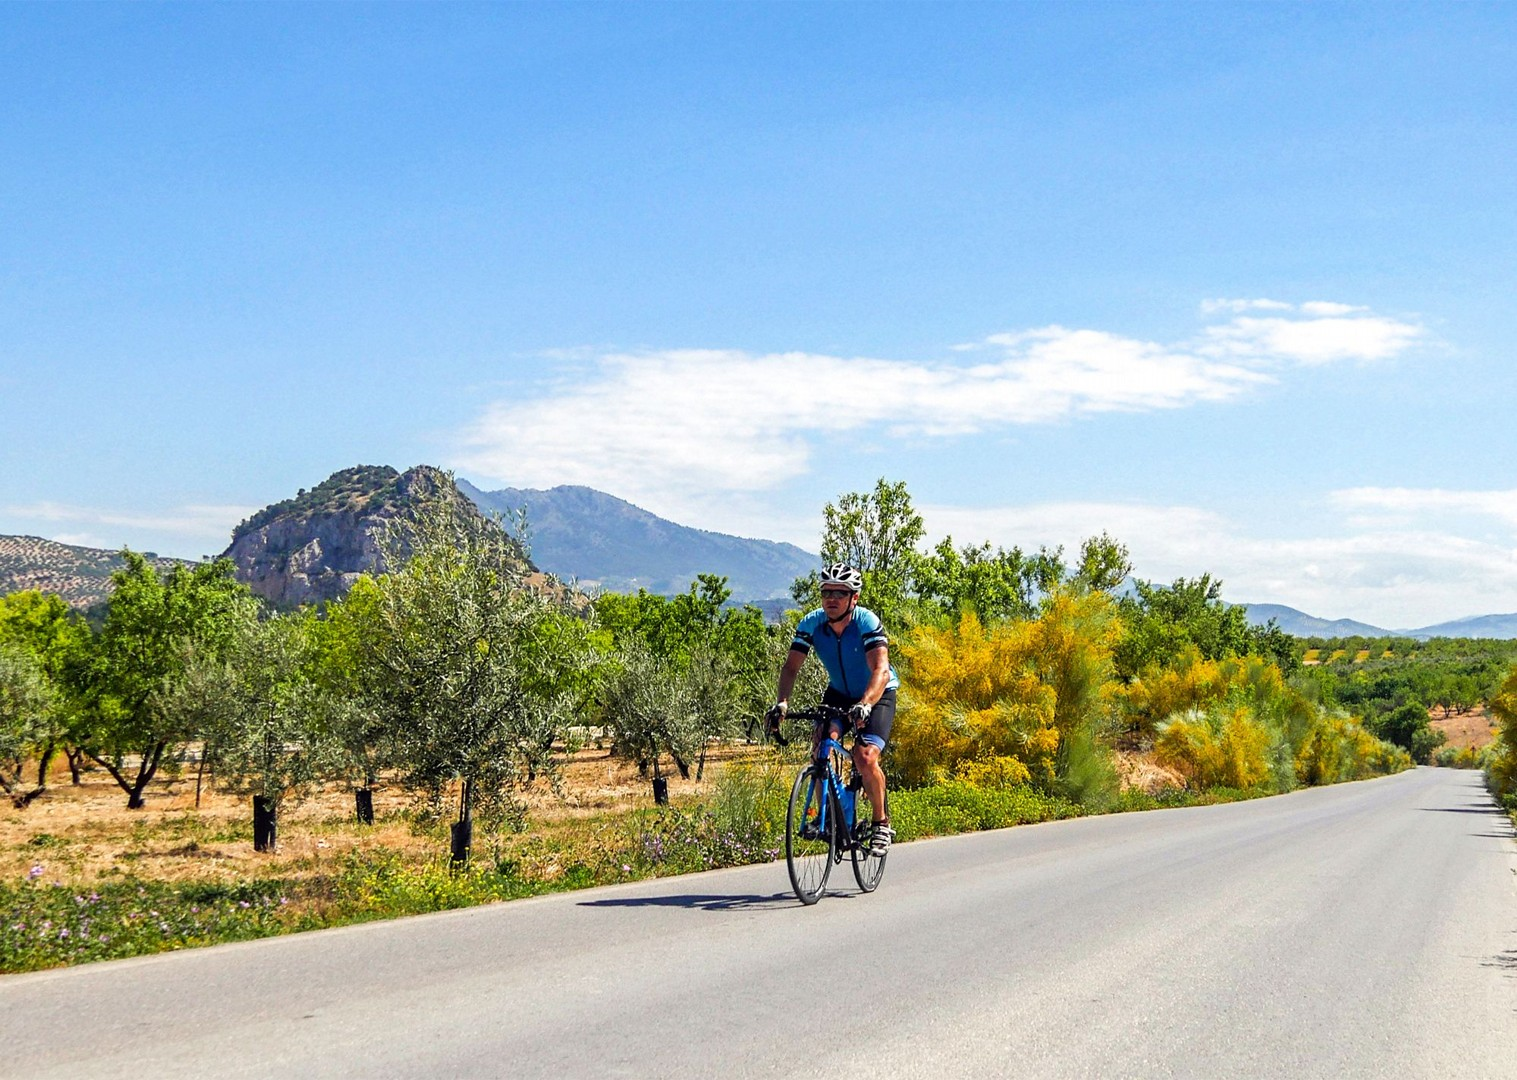 cycling-basque-country-to-andalucia-16-day-holiday-saddle-skedaddle.jpg - Spain - Basque Country to Andalucia - North to South (16 Days) - Guided Road Cycling Holiday - Road Cycling